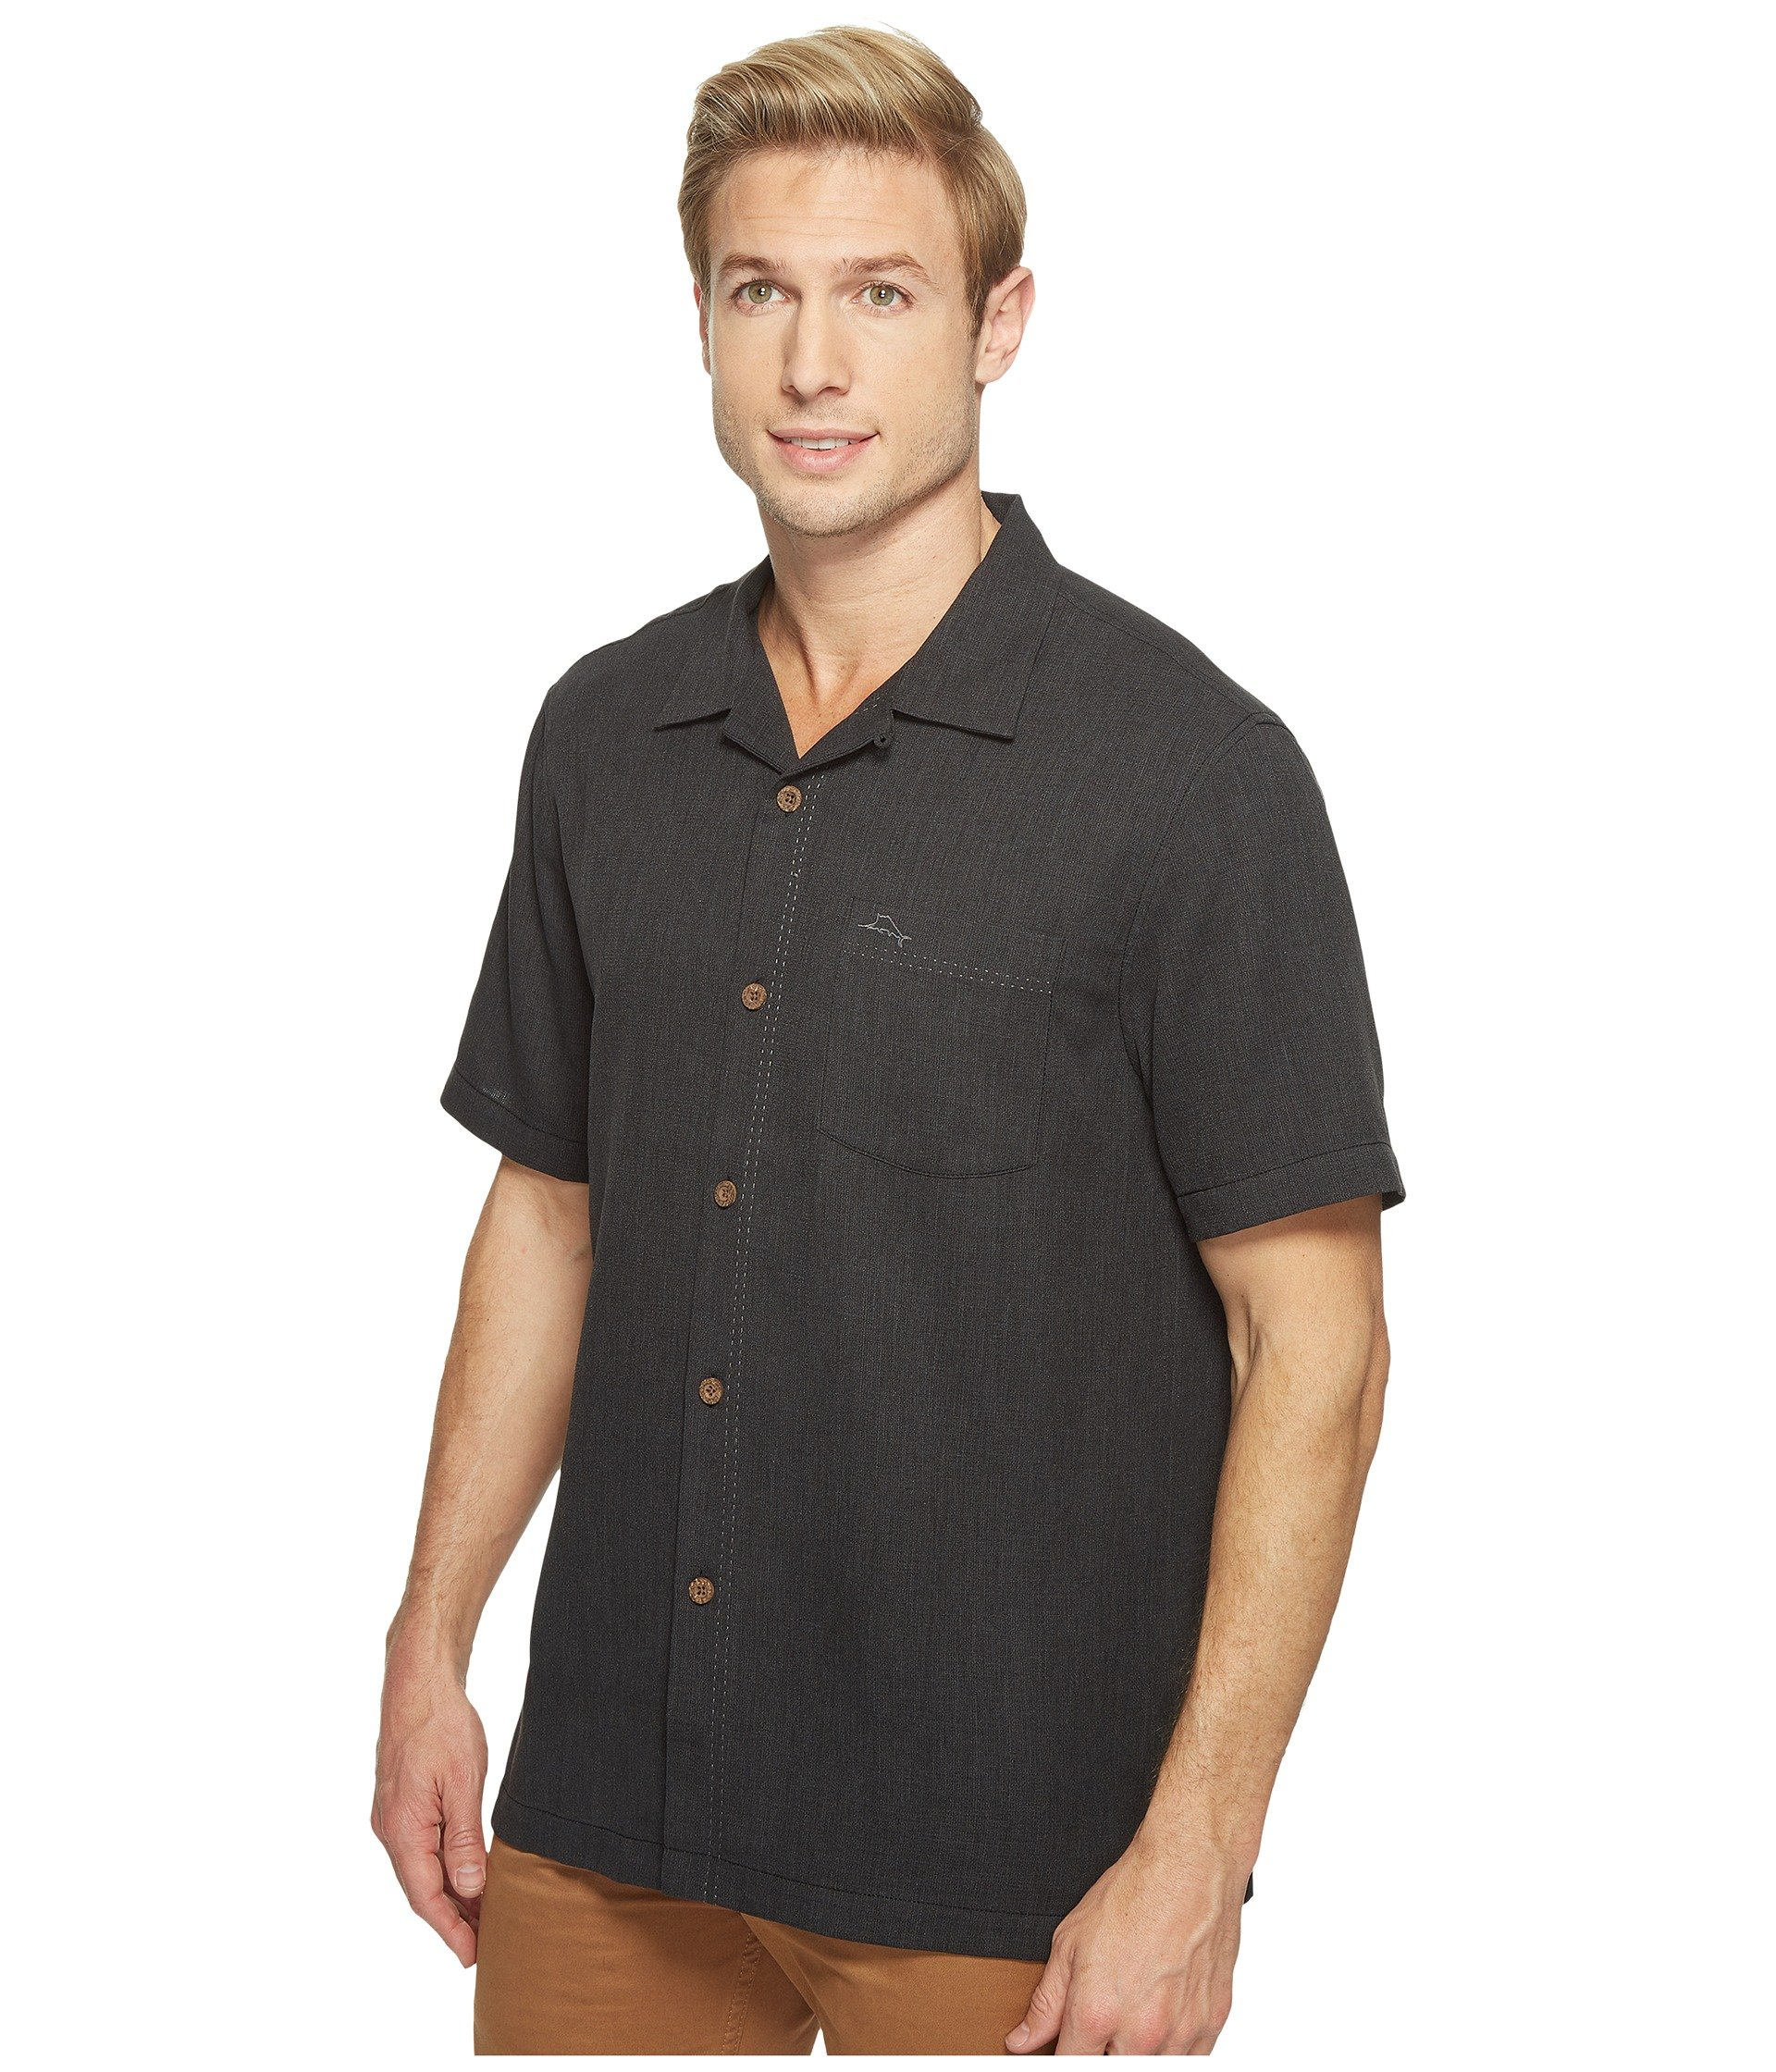 Black Bahama Shirt Royal Tommy Bermuda Camp YzWn0q6